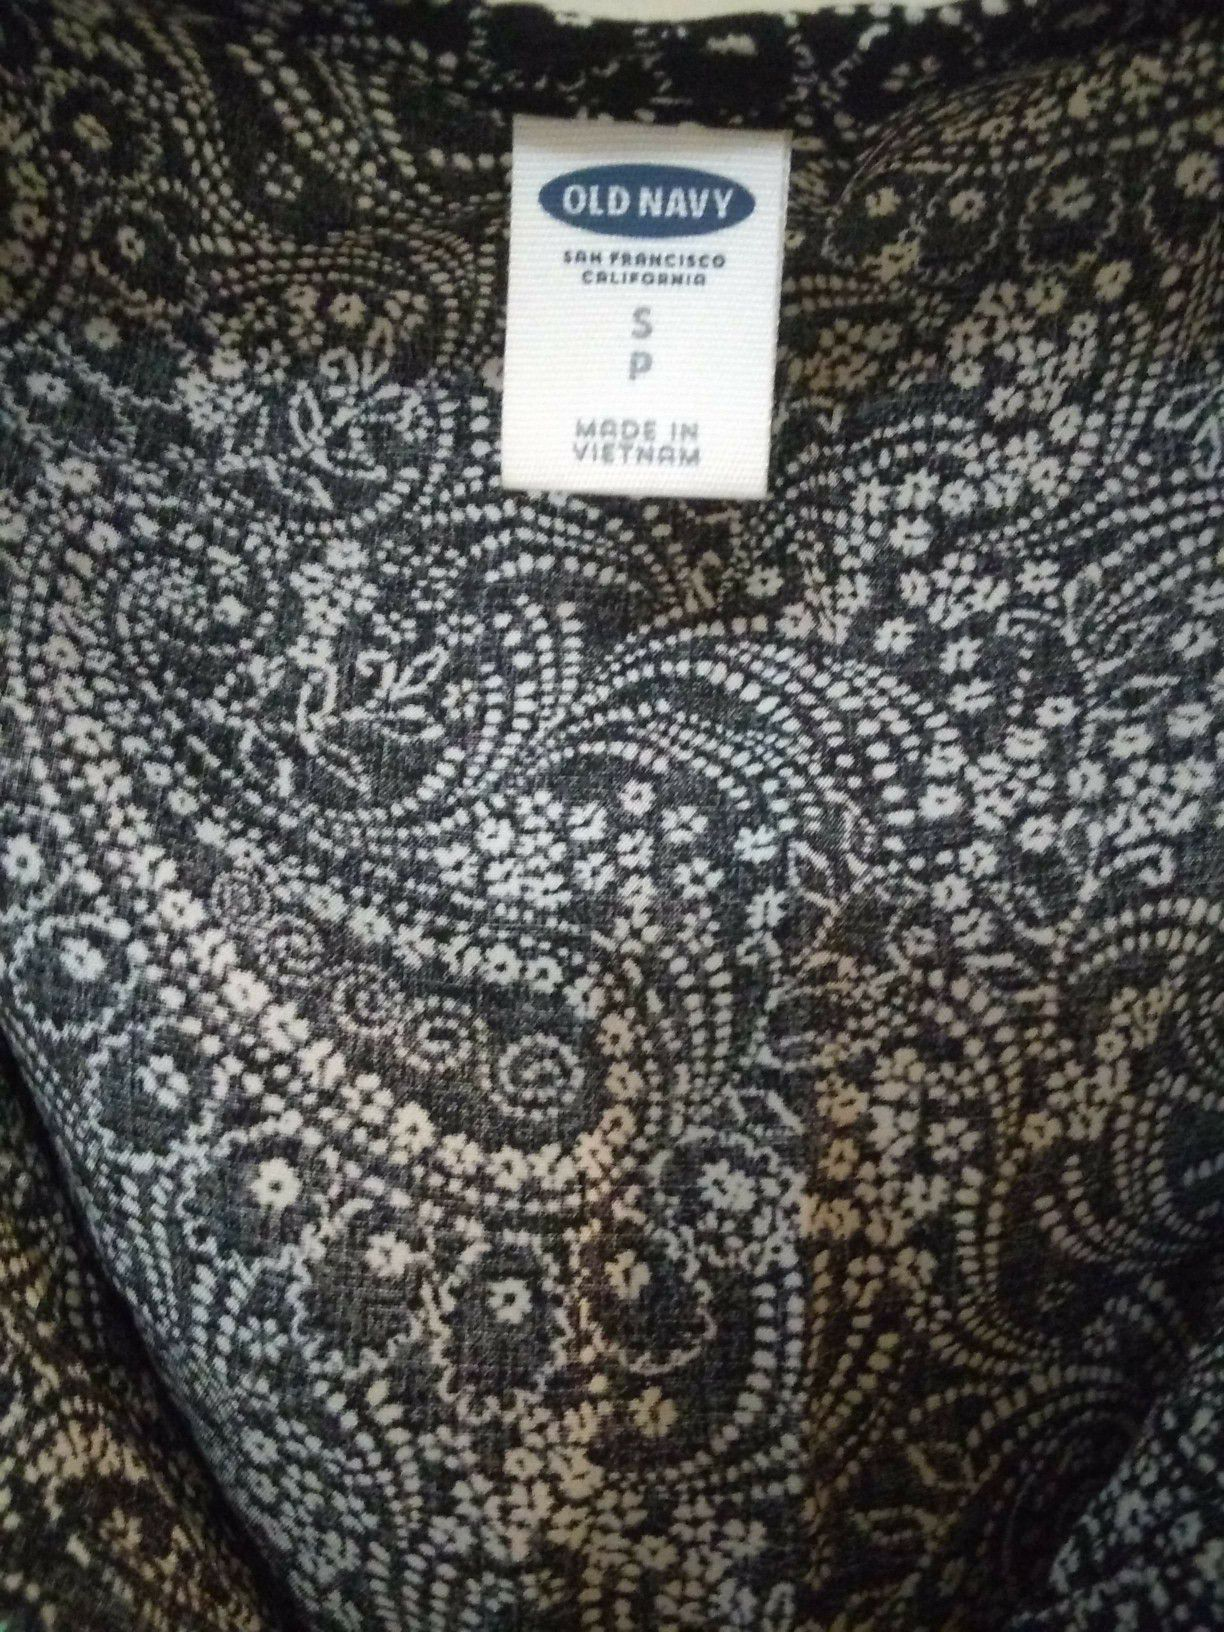 Black and white Old Navy dress, size Small